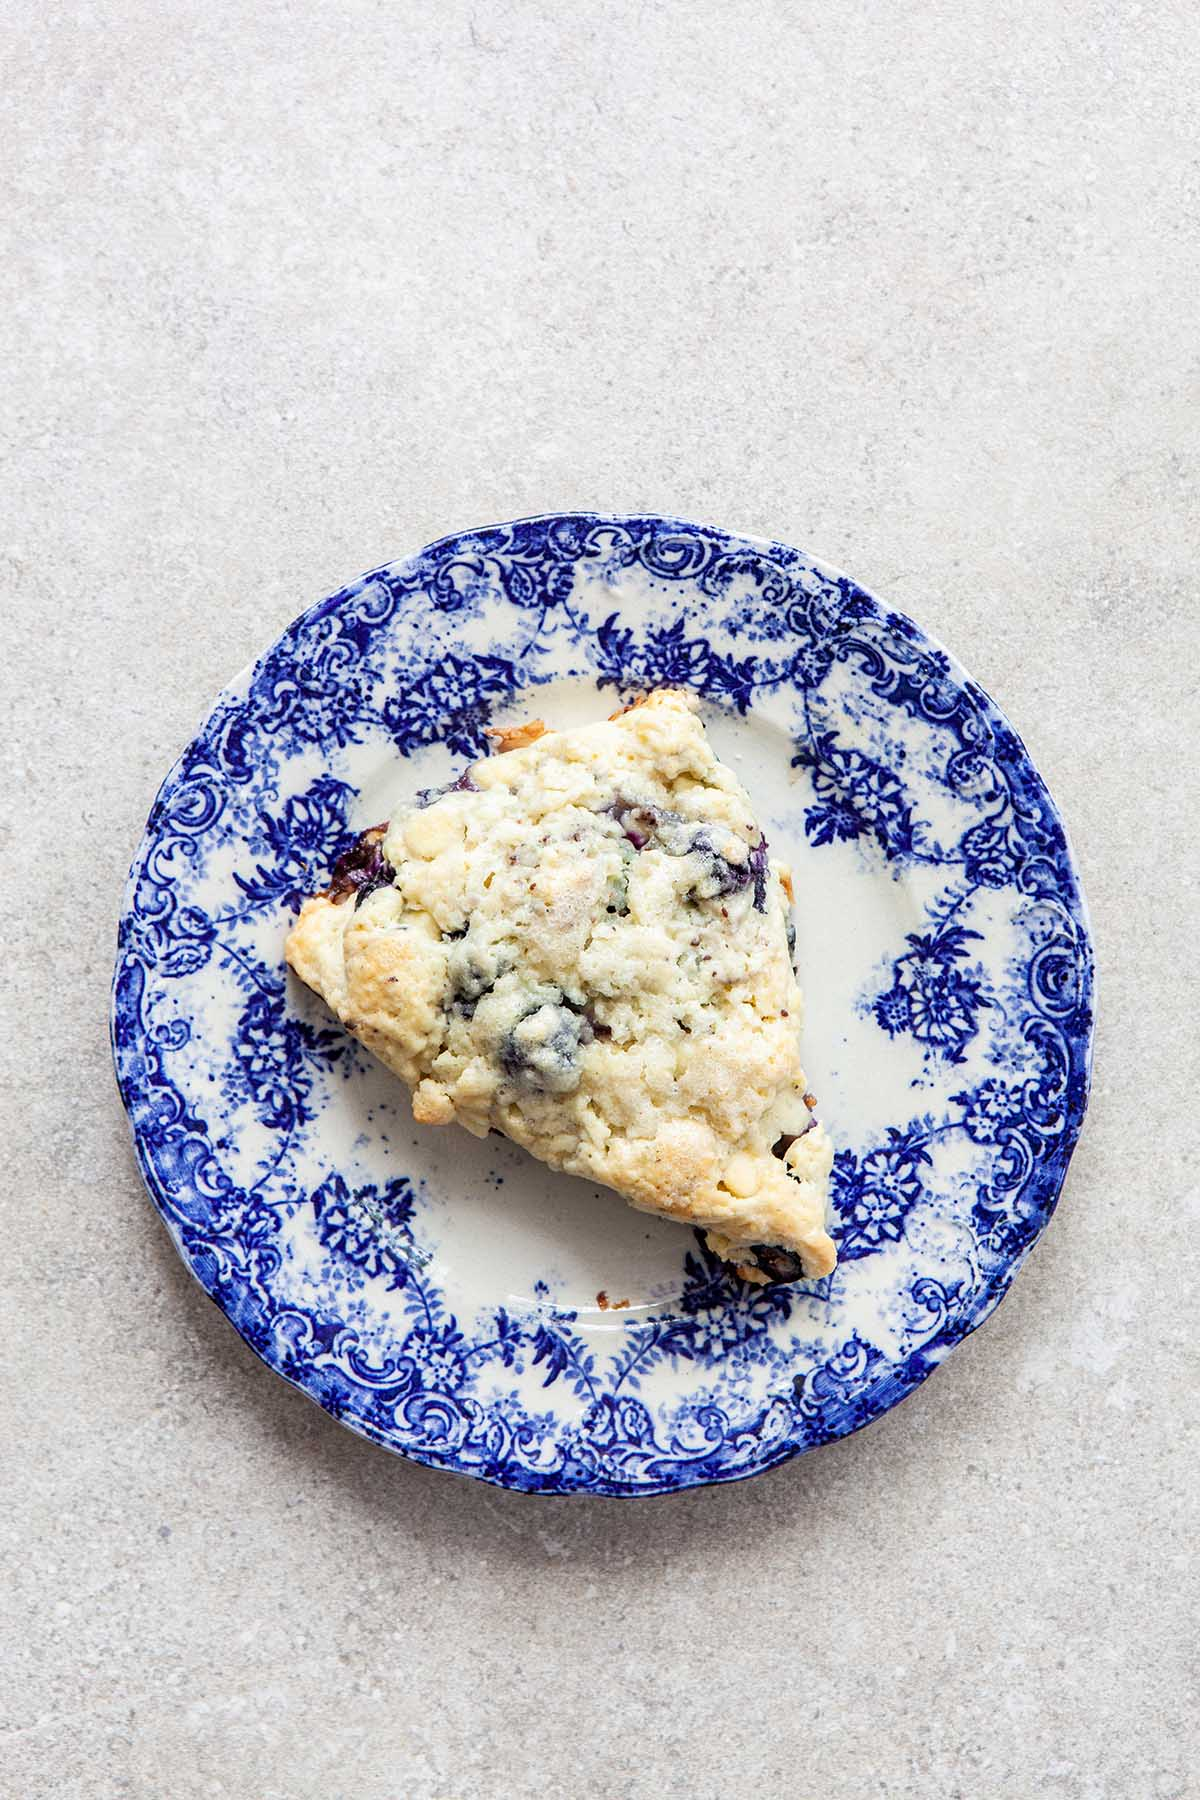 One scone on a blue and white plate laying on a stone surface.